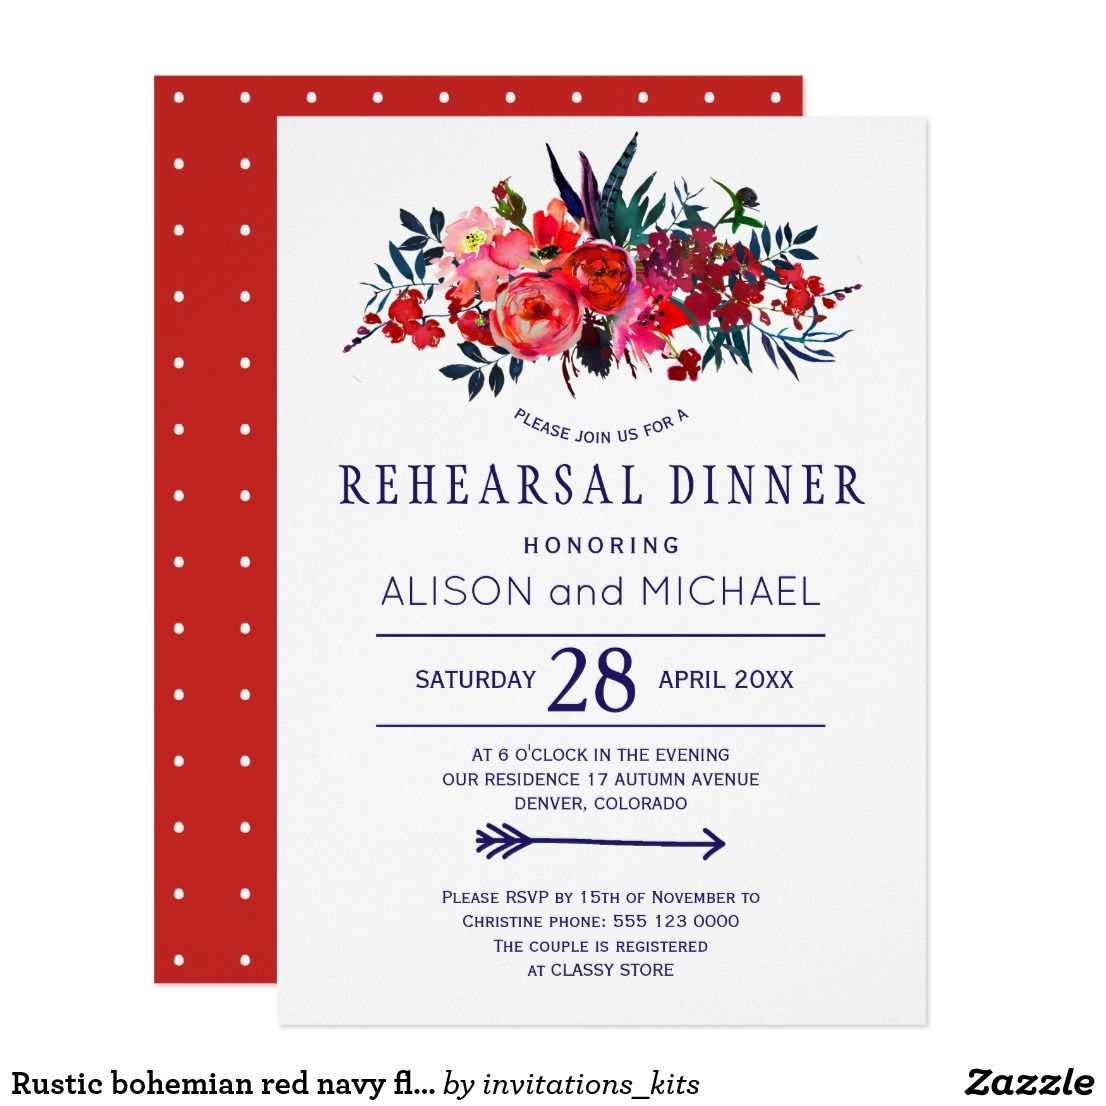 Rustic bohemian red navy floral rehearsal dinner invitation ...